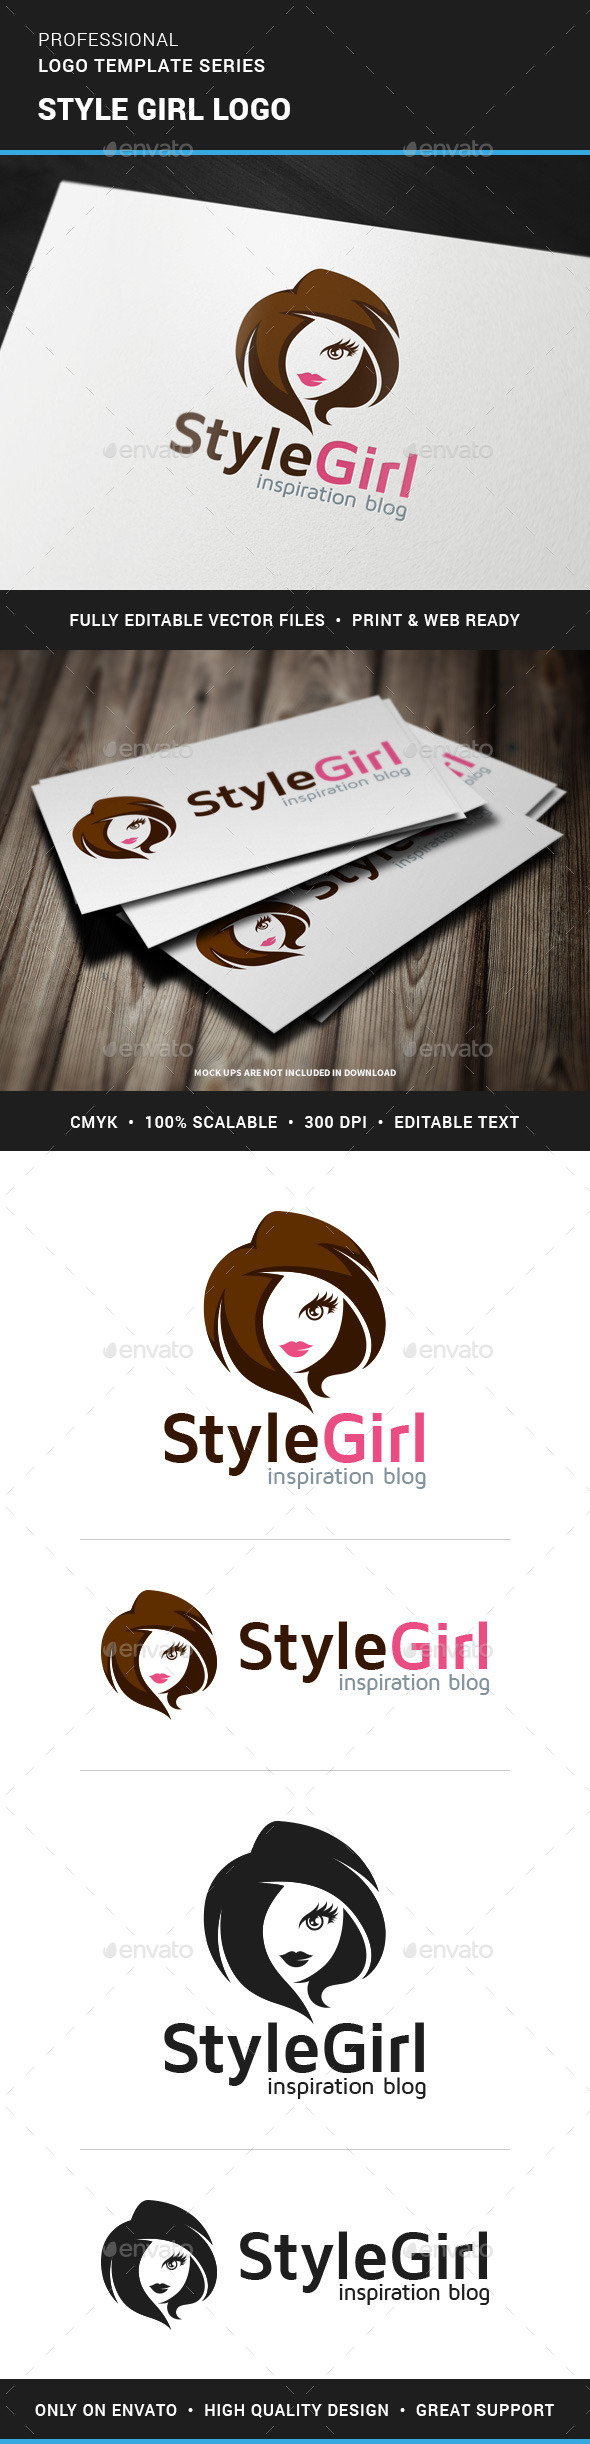 Style Girl Logo Template